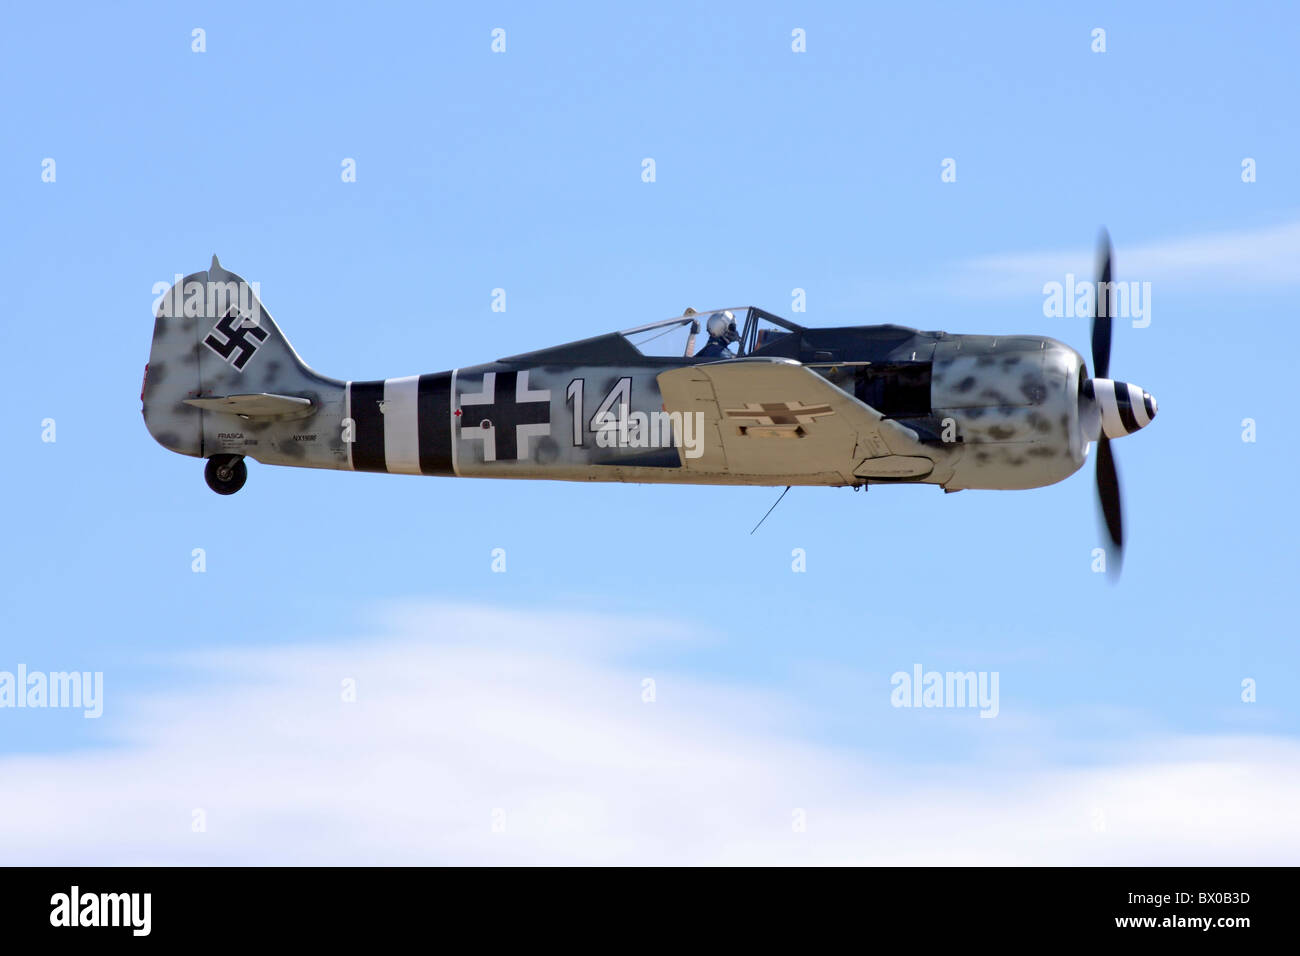 Focke-Wulf Fw-190 in flight during the 2010 Reno National Championship Air Races. - Stock Image